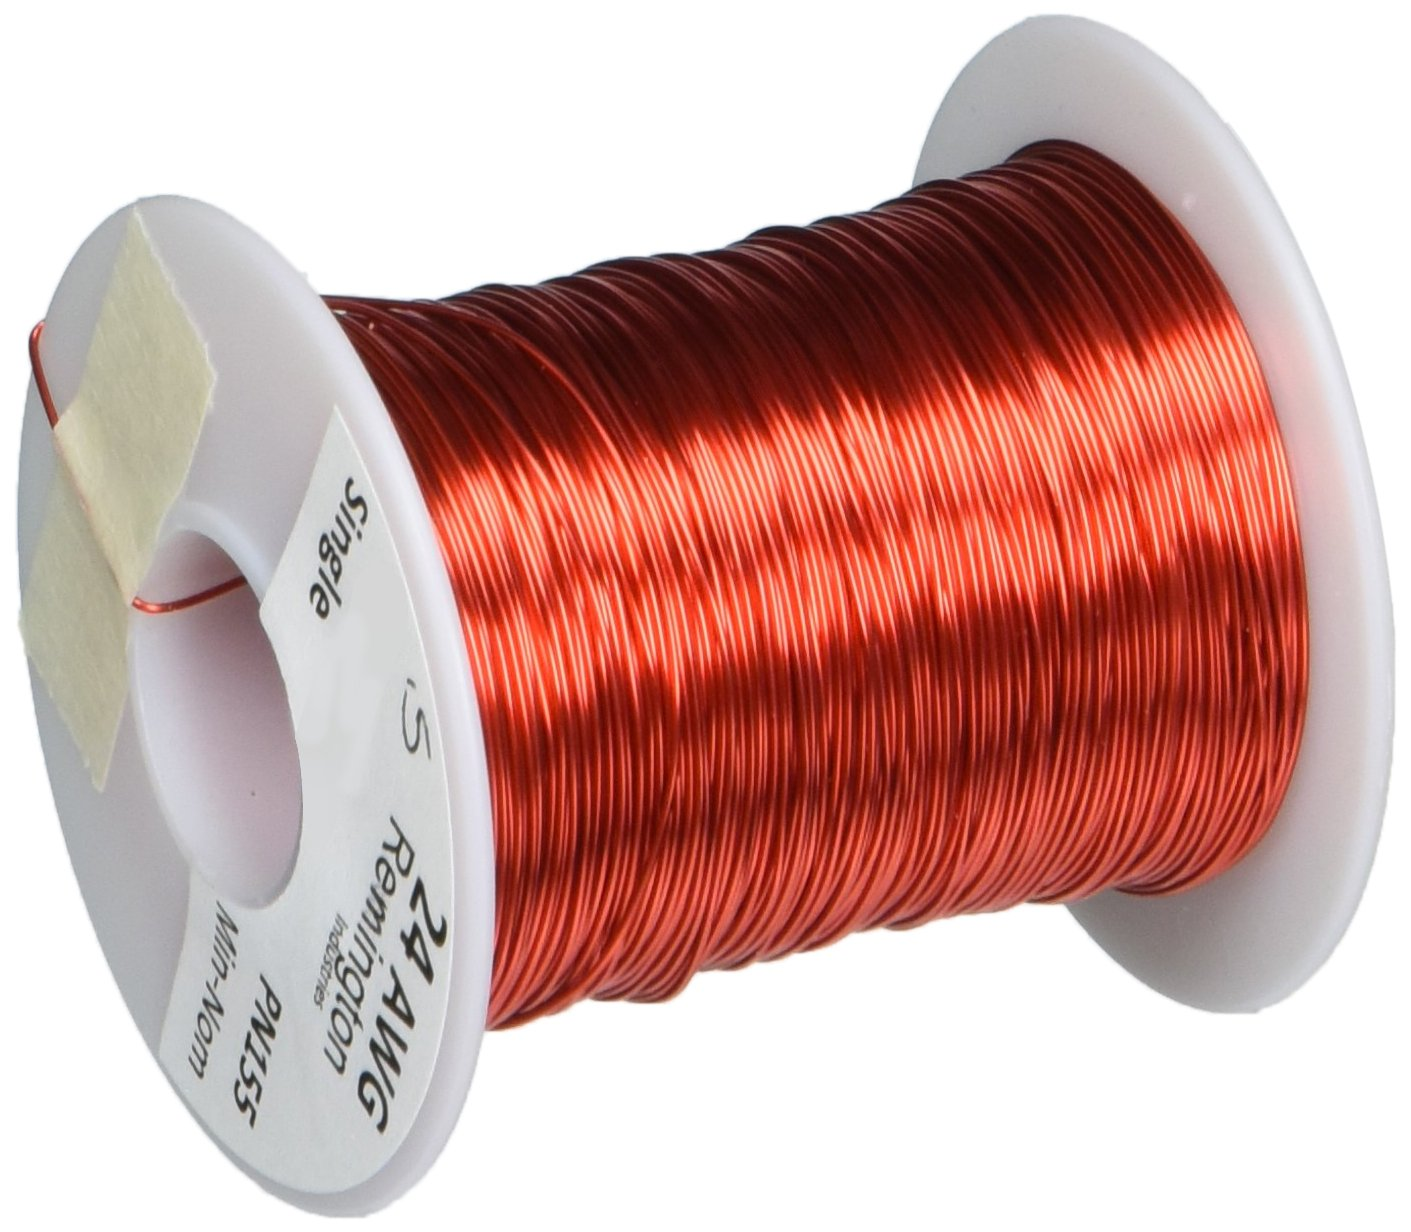 Remington Industries 24SNSP.5 Magnet Wire, Enameled Copper Wire, 24 AWG, 8 oz, 401' Length, 0.0221'' Diameter, Red